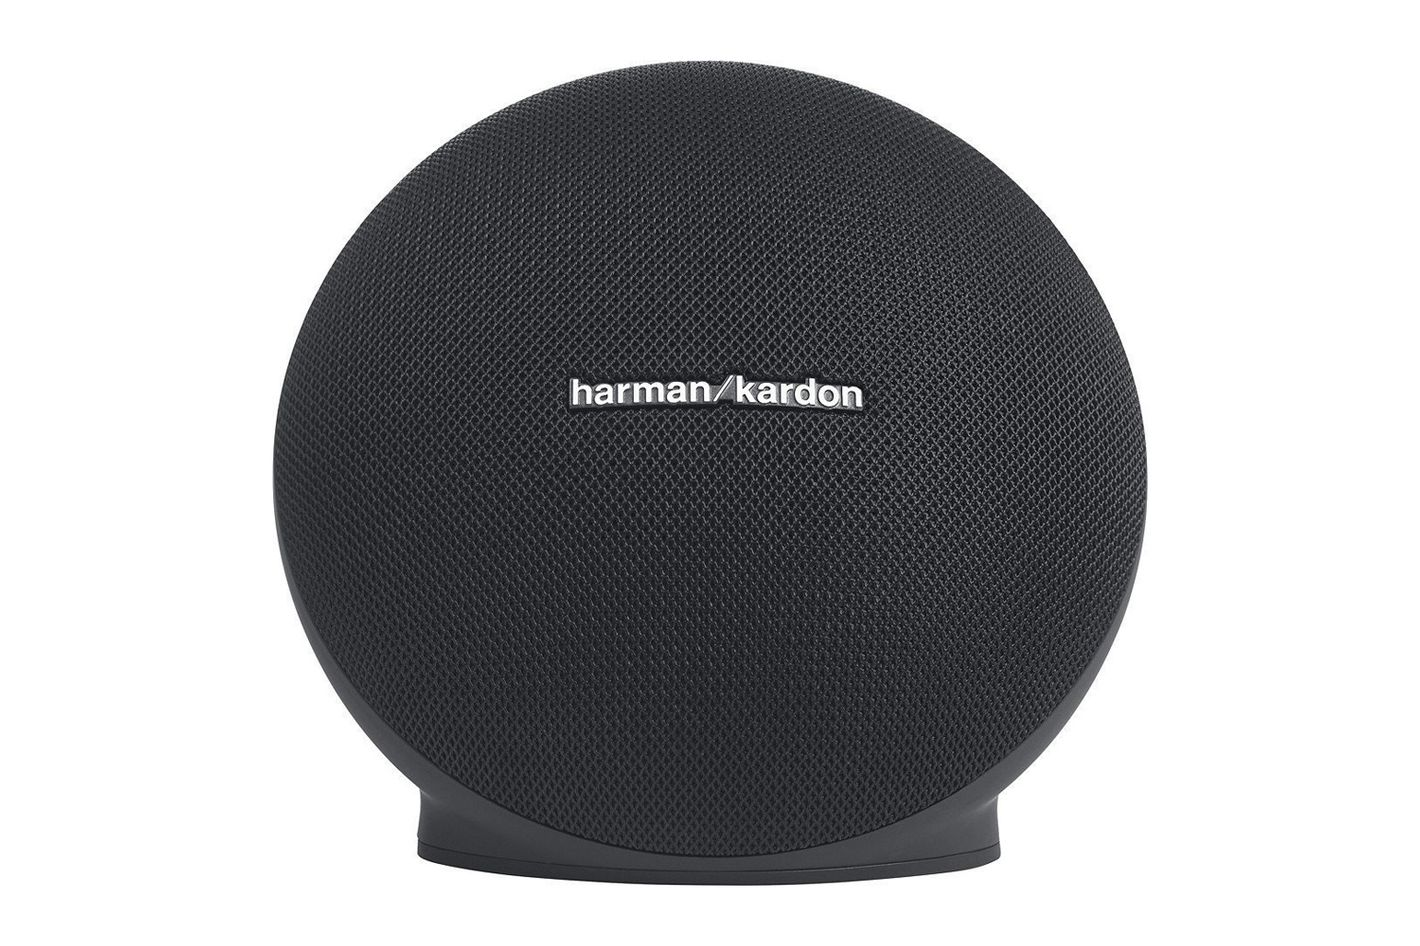 Harman/kardon Onyx Portable Wireless Speaker